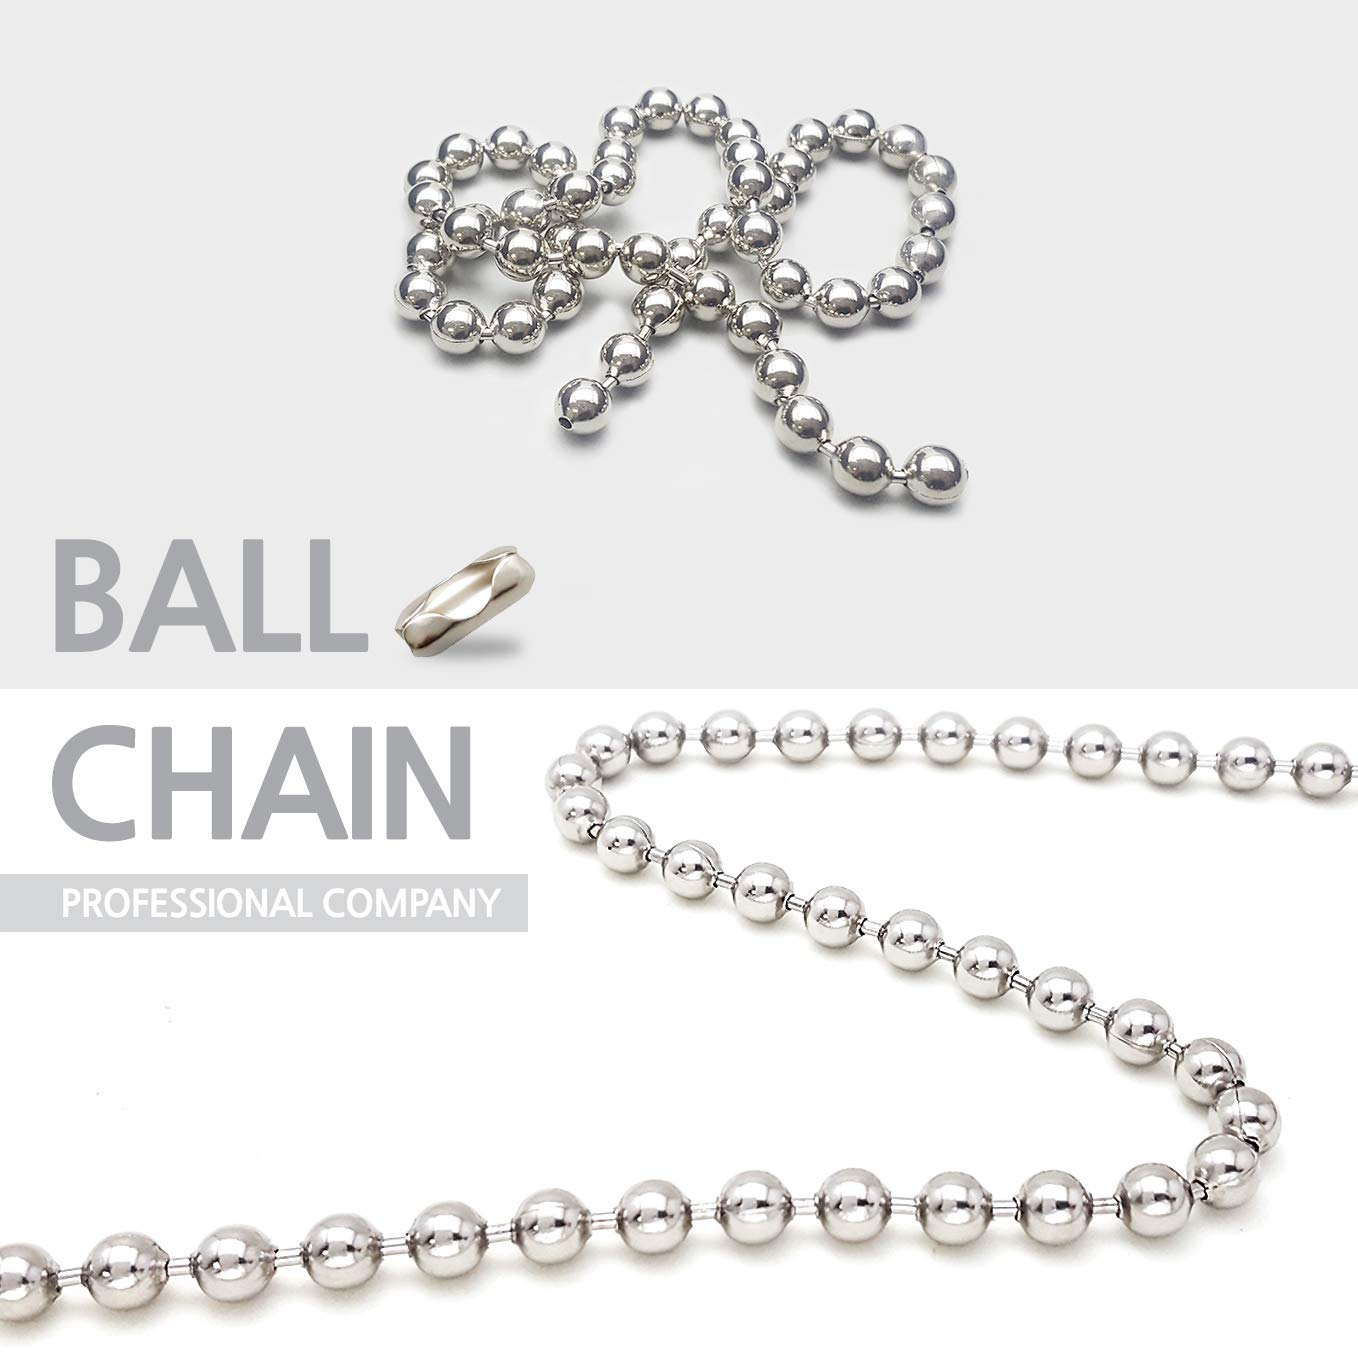 Ball Chain Number 6 Connectors Stainless Steel 50 Count